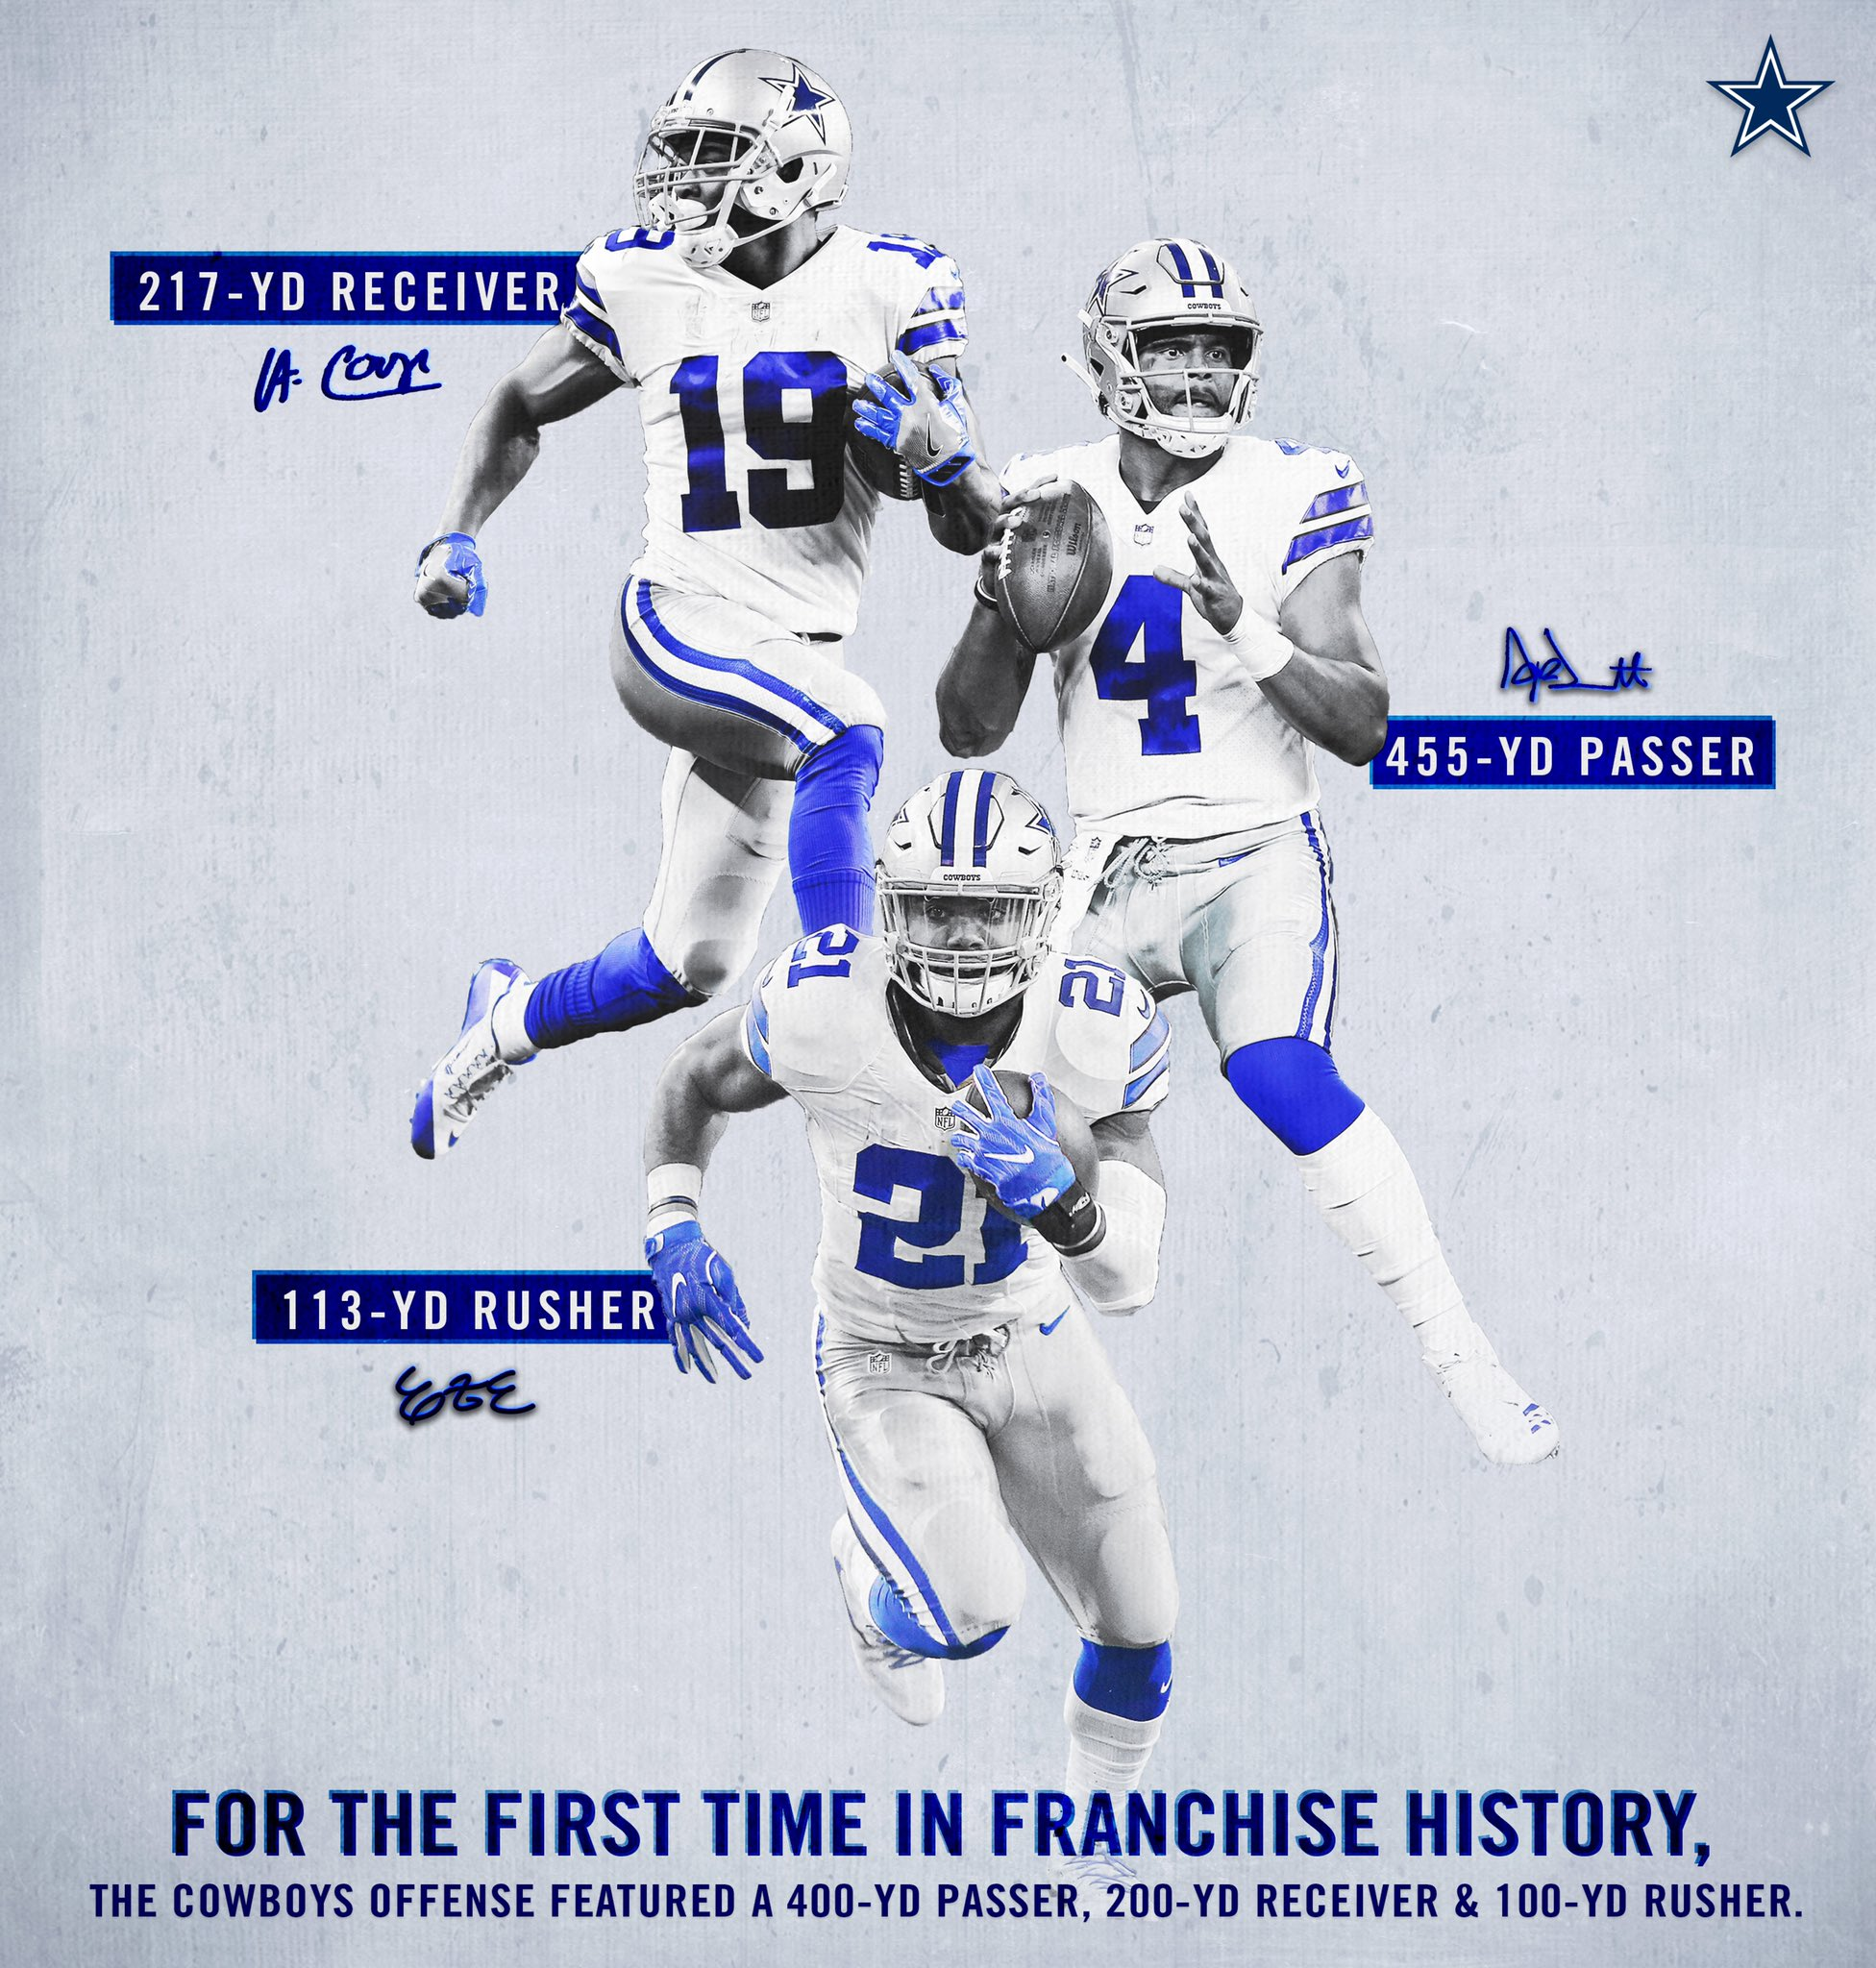 Making #DallasCowboys history... https://t.co/OFKlHntJCy